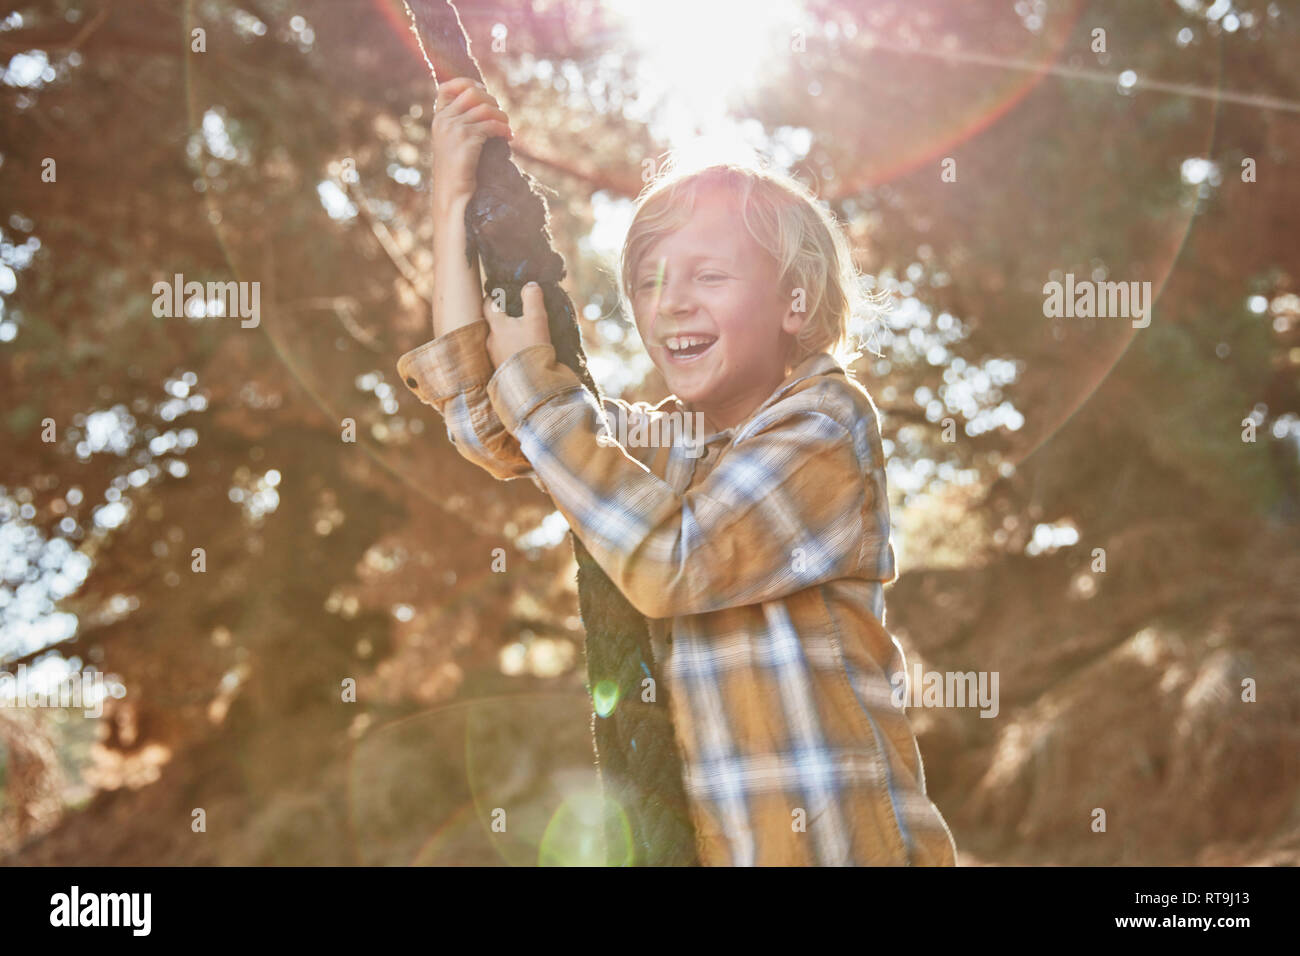 Happy boy swinging on a rope in backlight - Stock Image